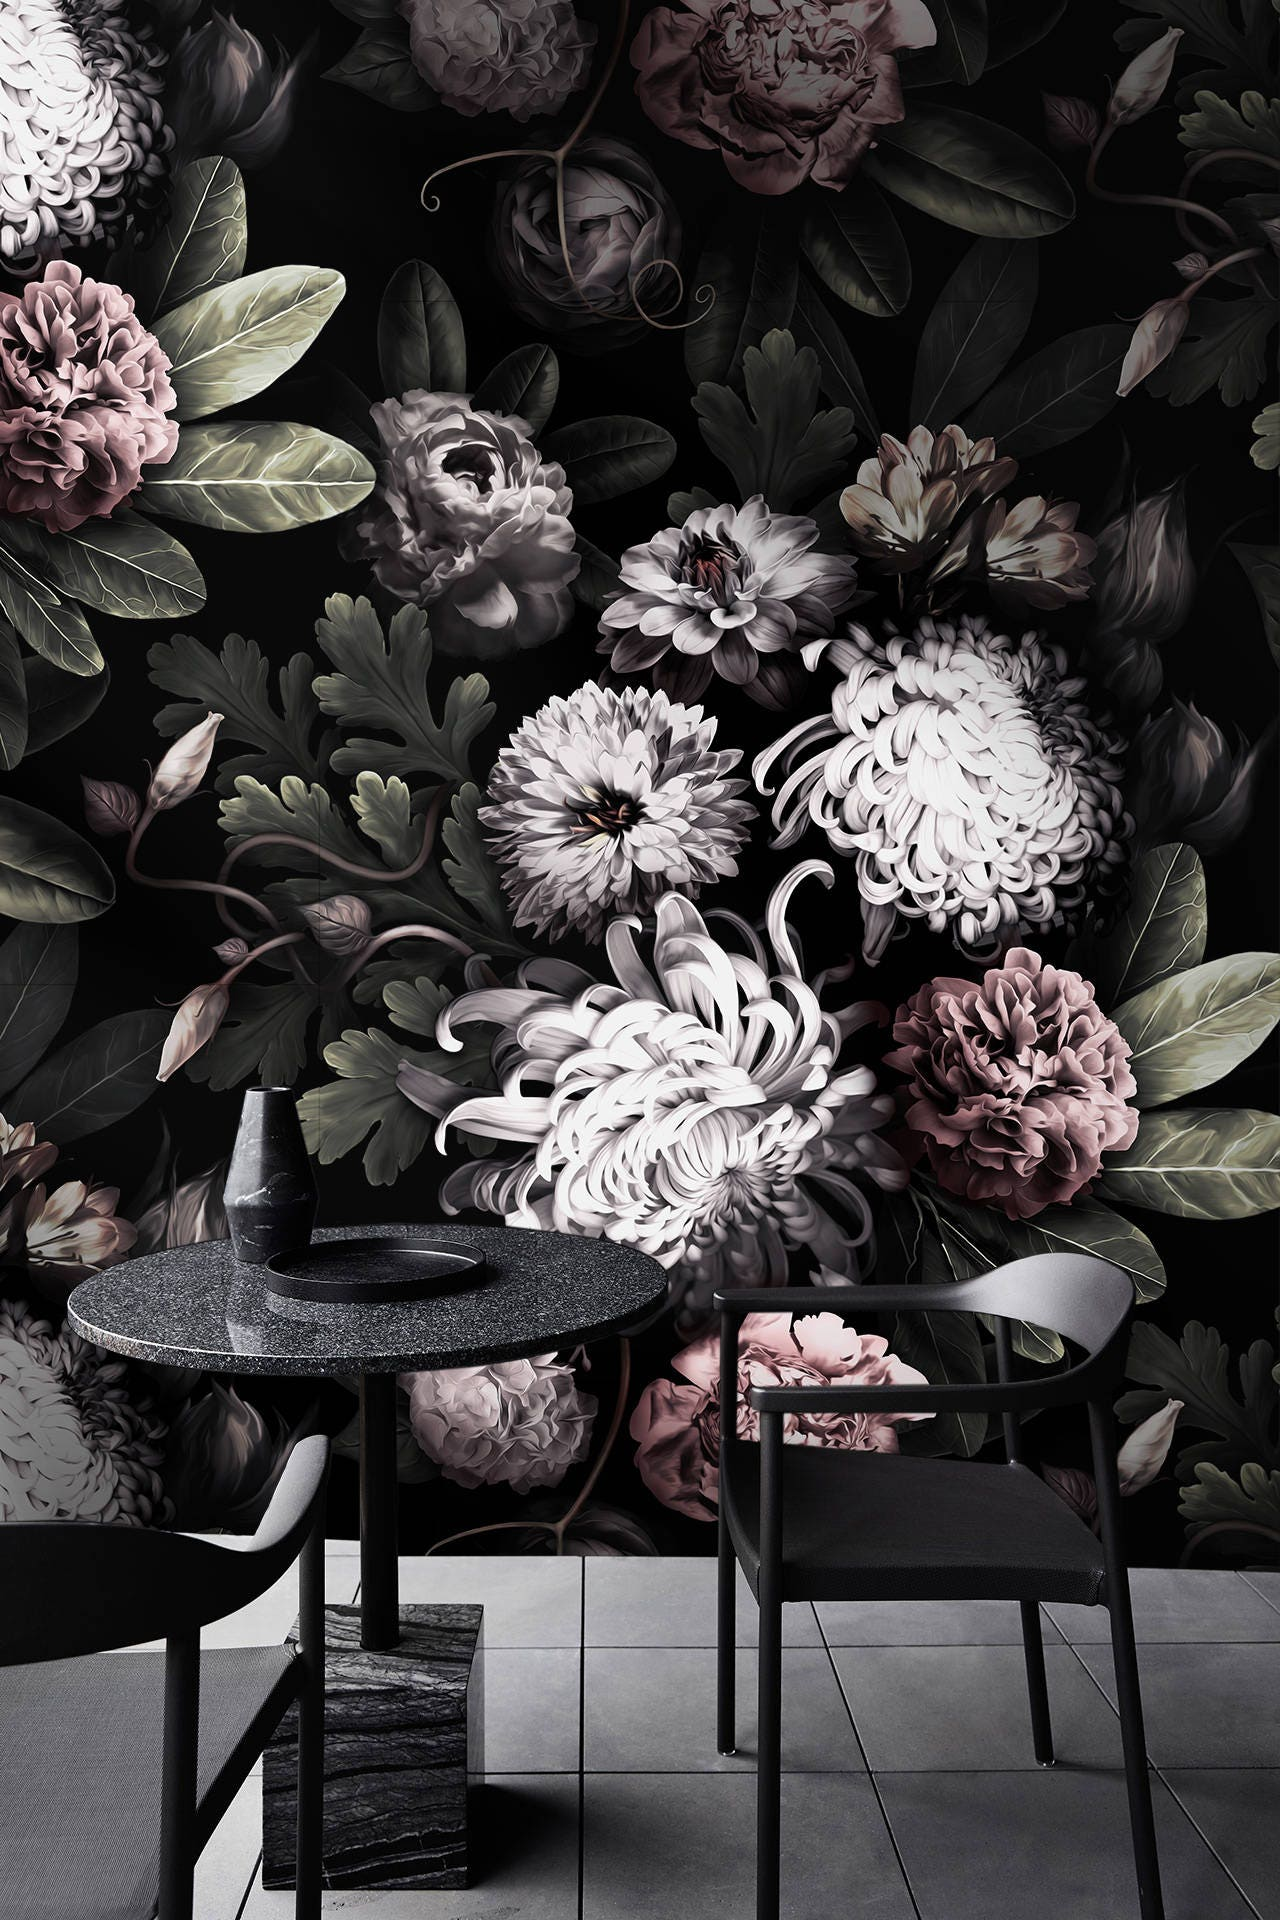 Dark Floral Wallpaper Floral Peonies Wallpaper Dark Flowers Peony